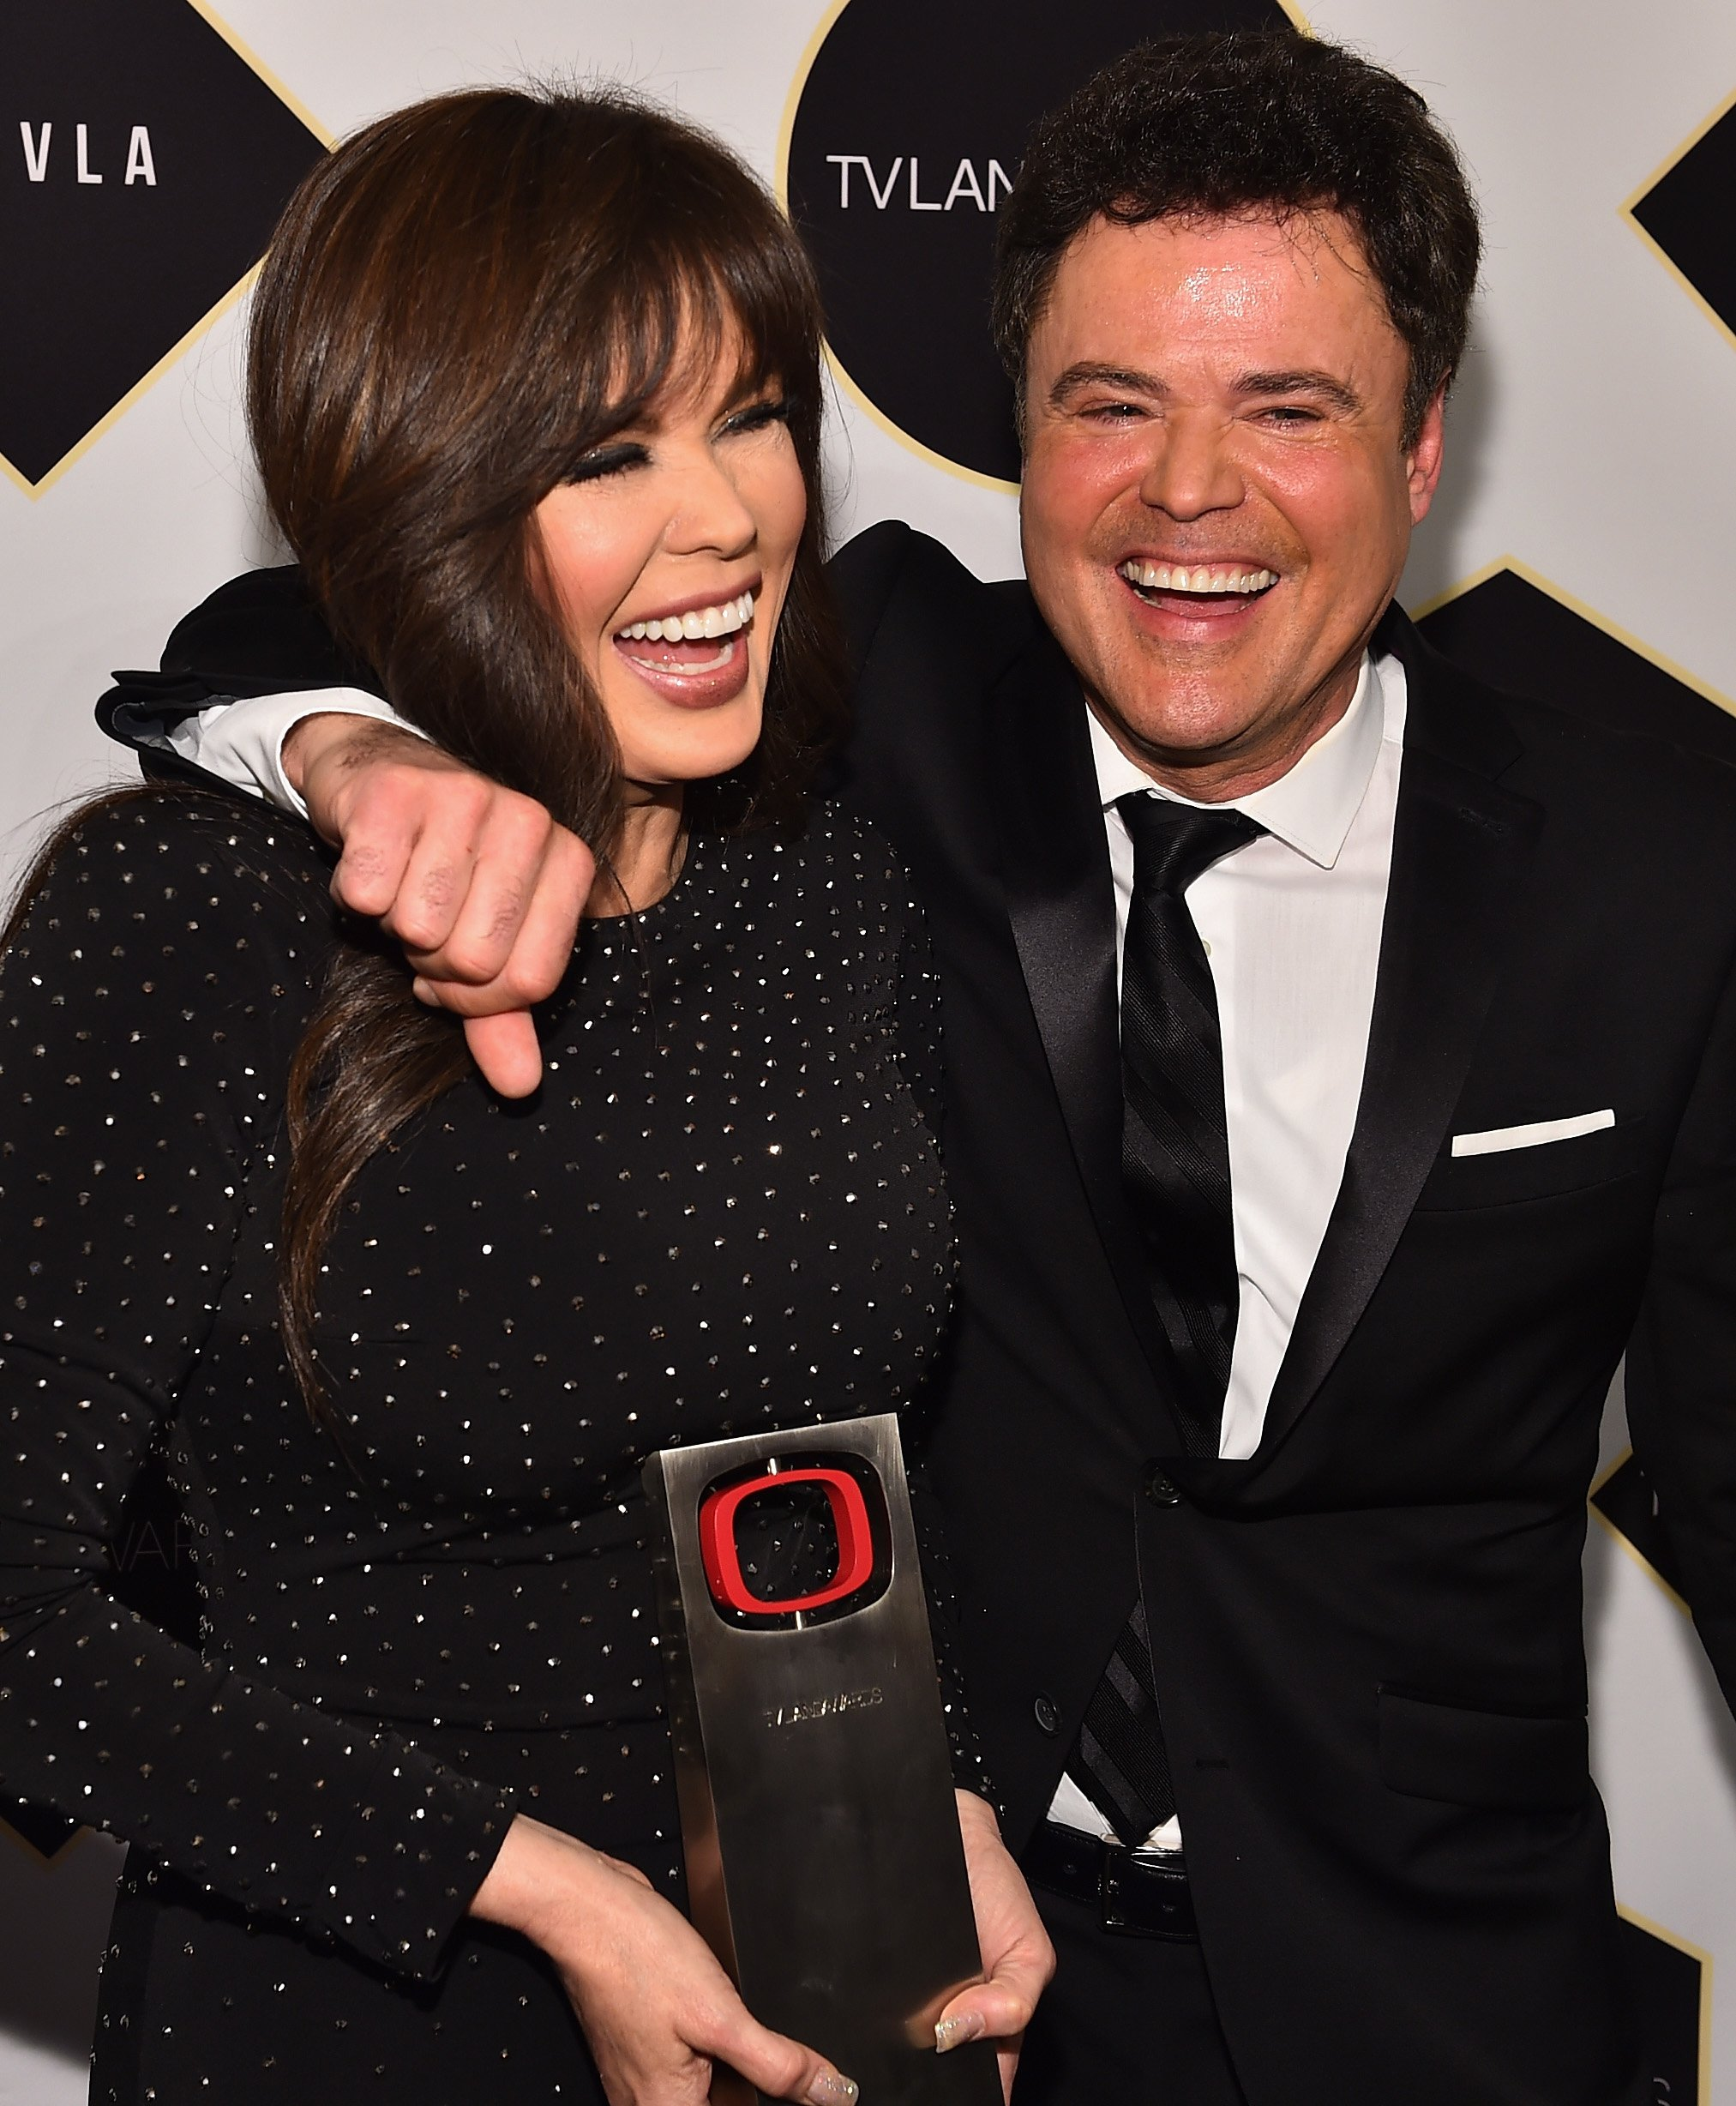 Marie and Donny Osmond during the 2015 TV Land Awards on April 11, 2015 | Photo: GettyImages